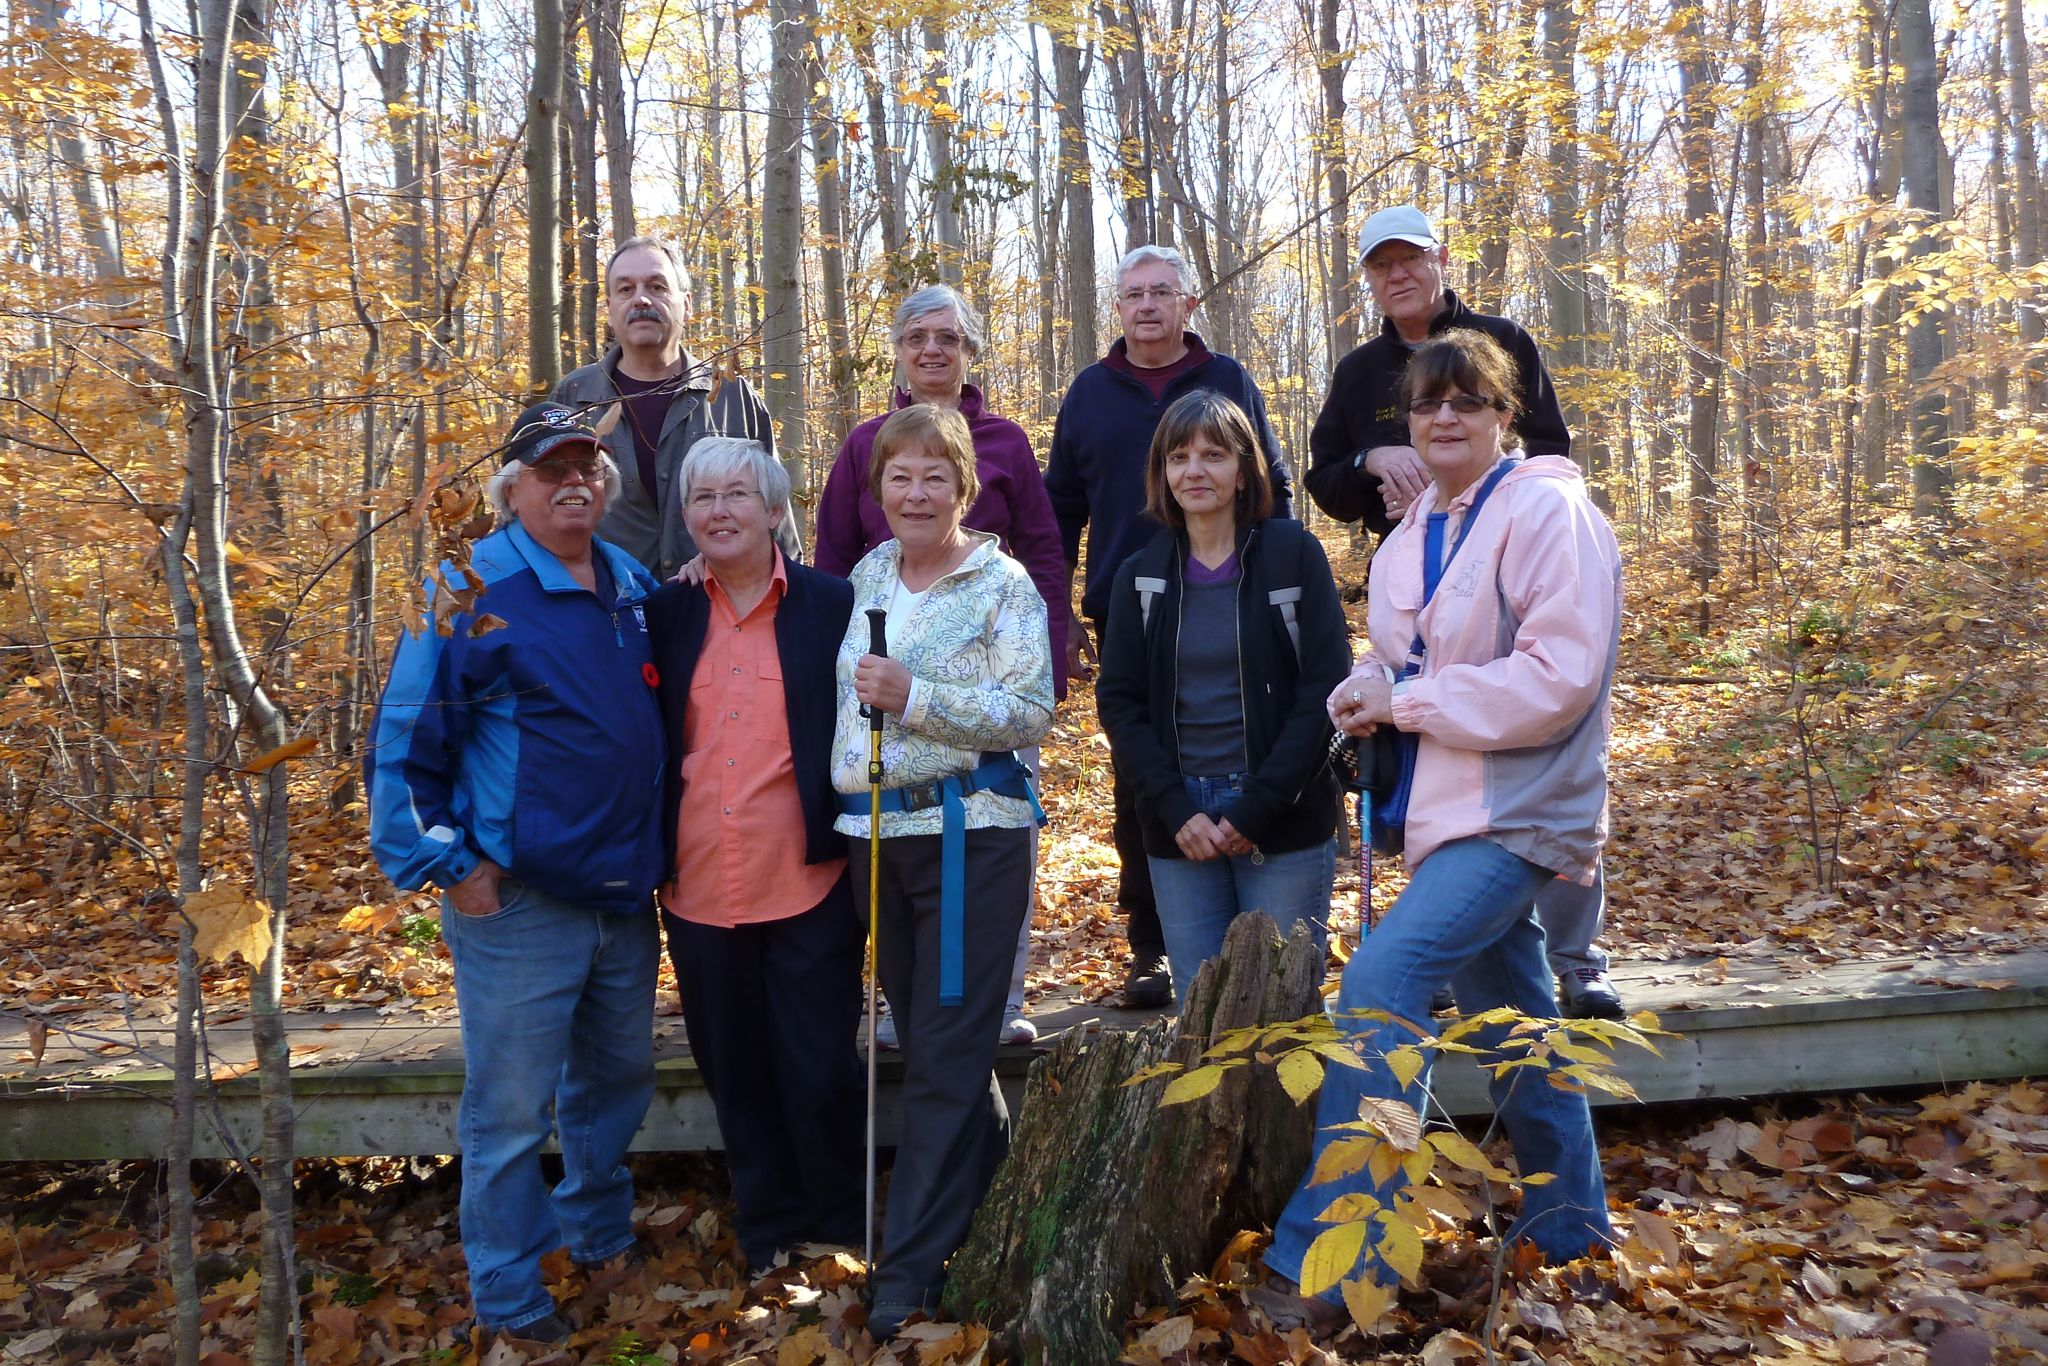 Fall hike in Springwater C.A. Glad Ray and Daniela could join us.